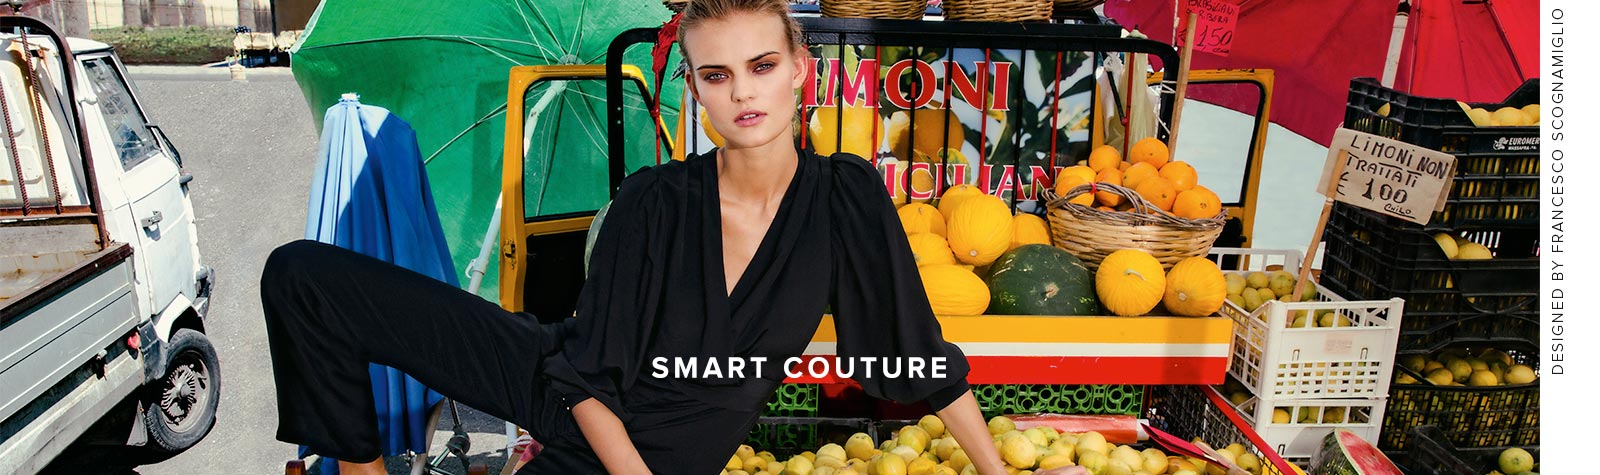 Motivi - Smart Couture Motivi